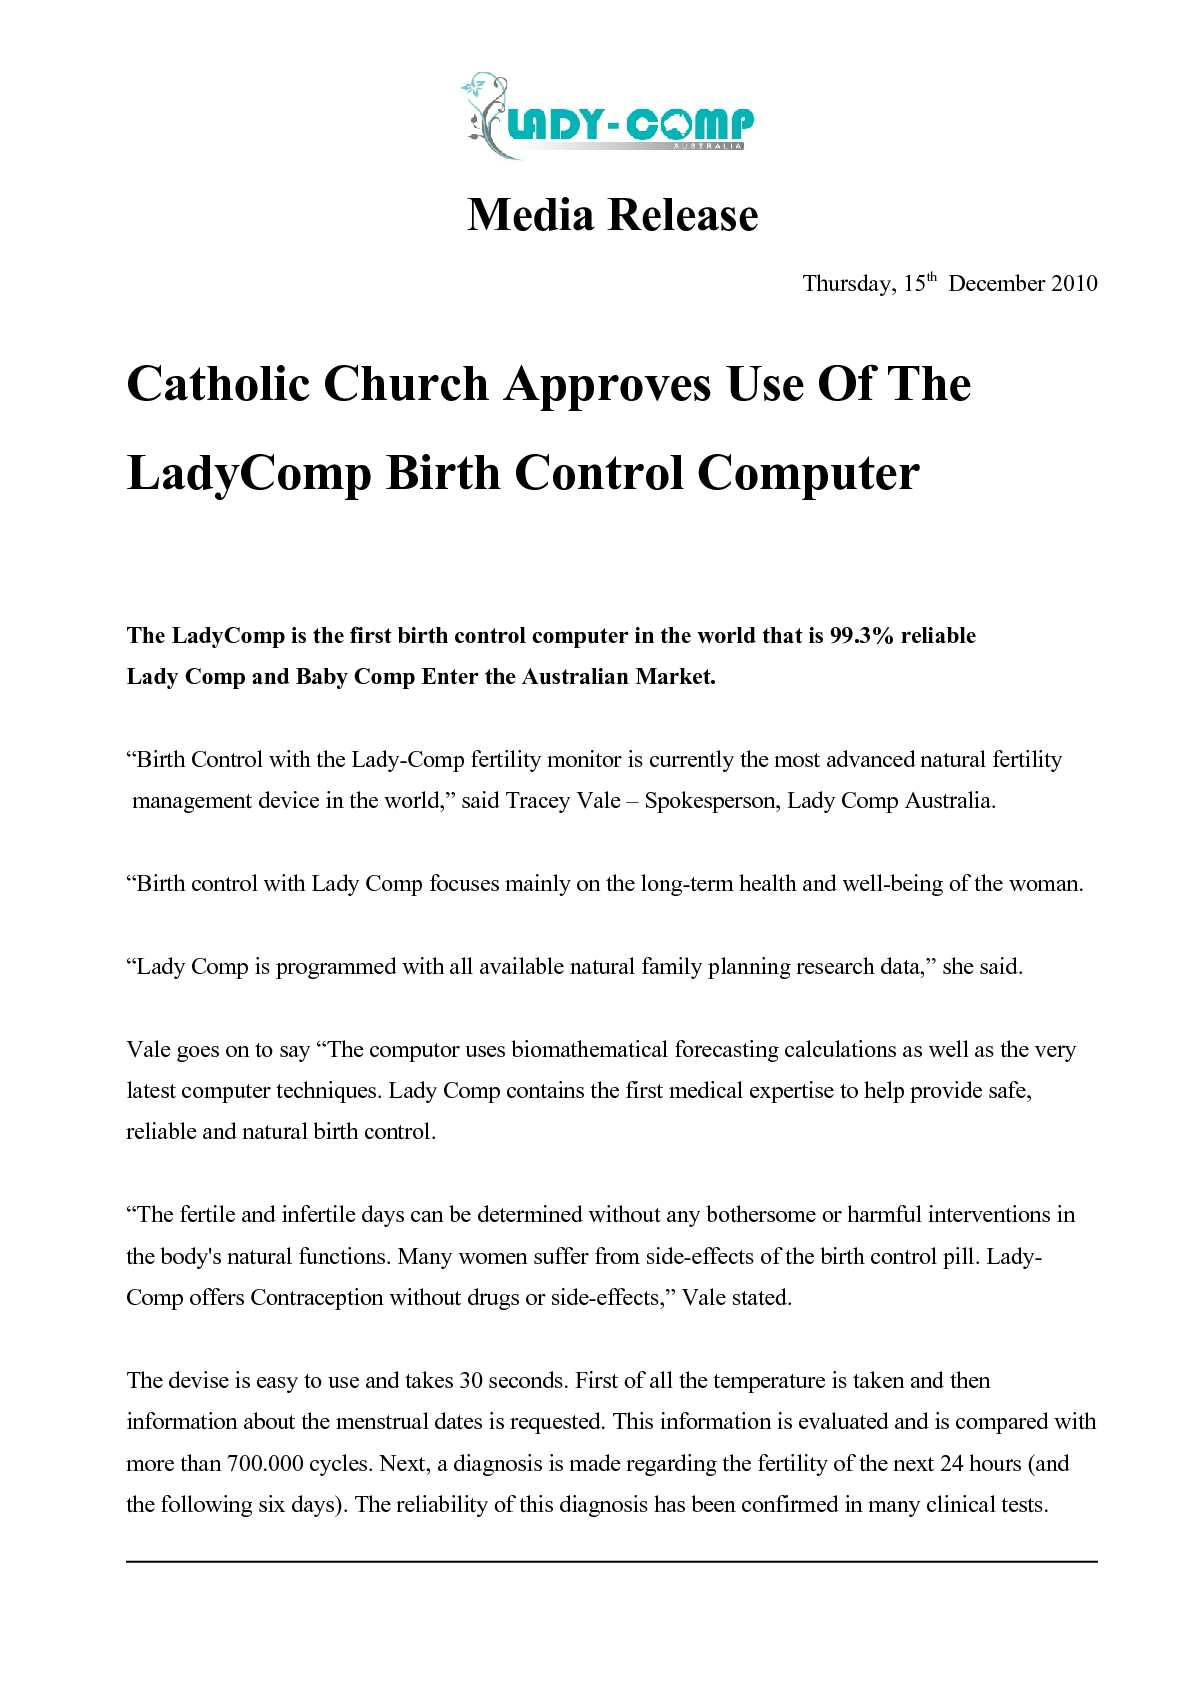 Calameo Catholic Church Approves Use Of The Ladycomp Birth Control Computer